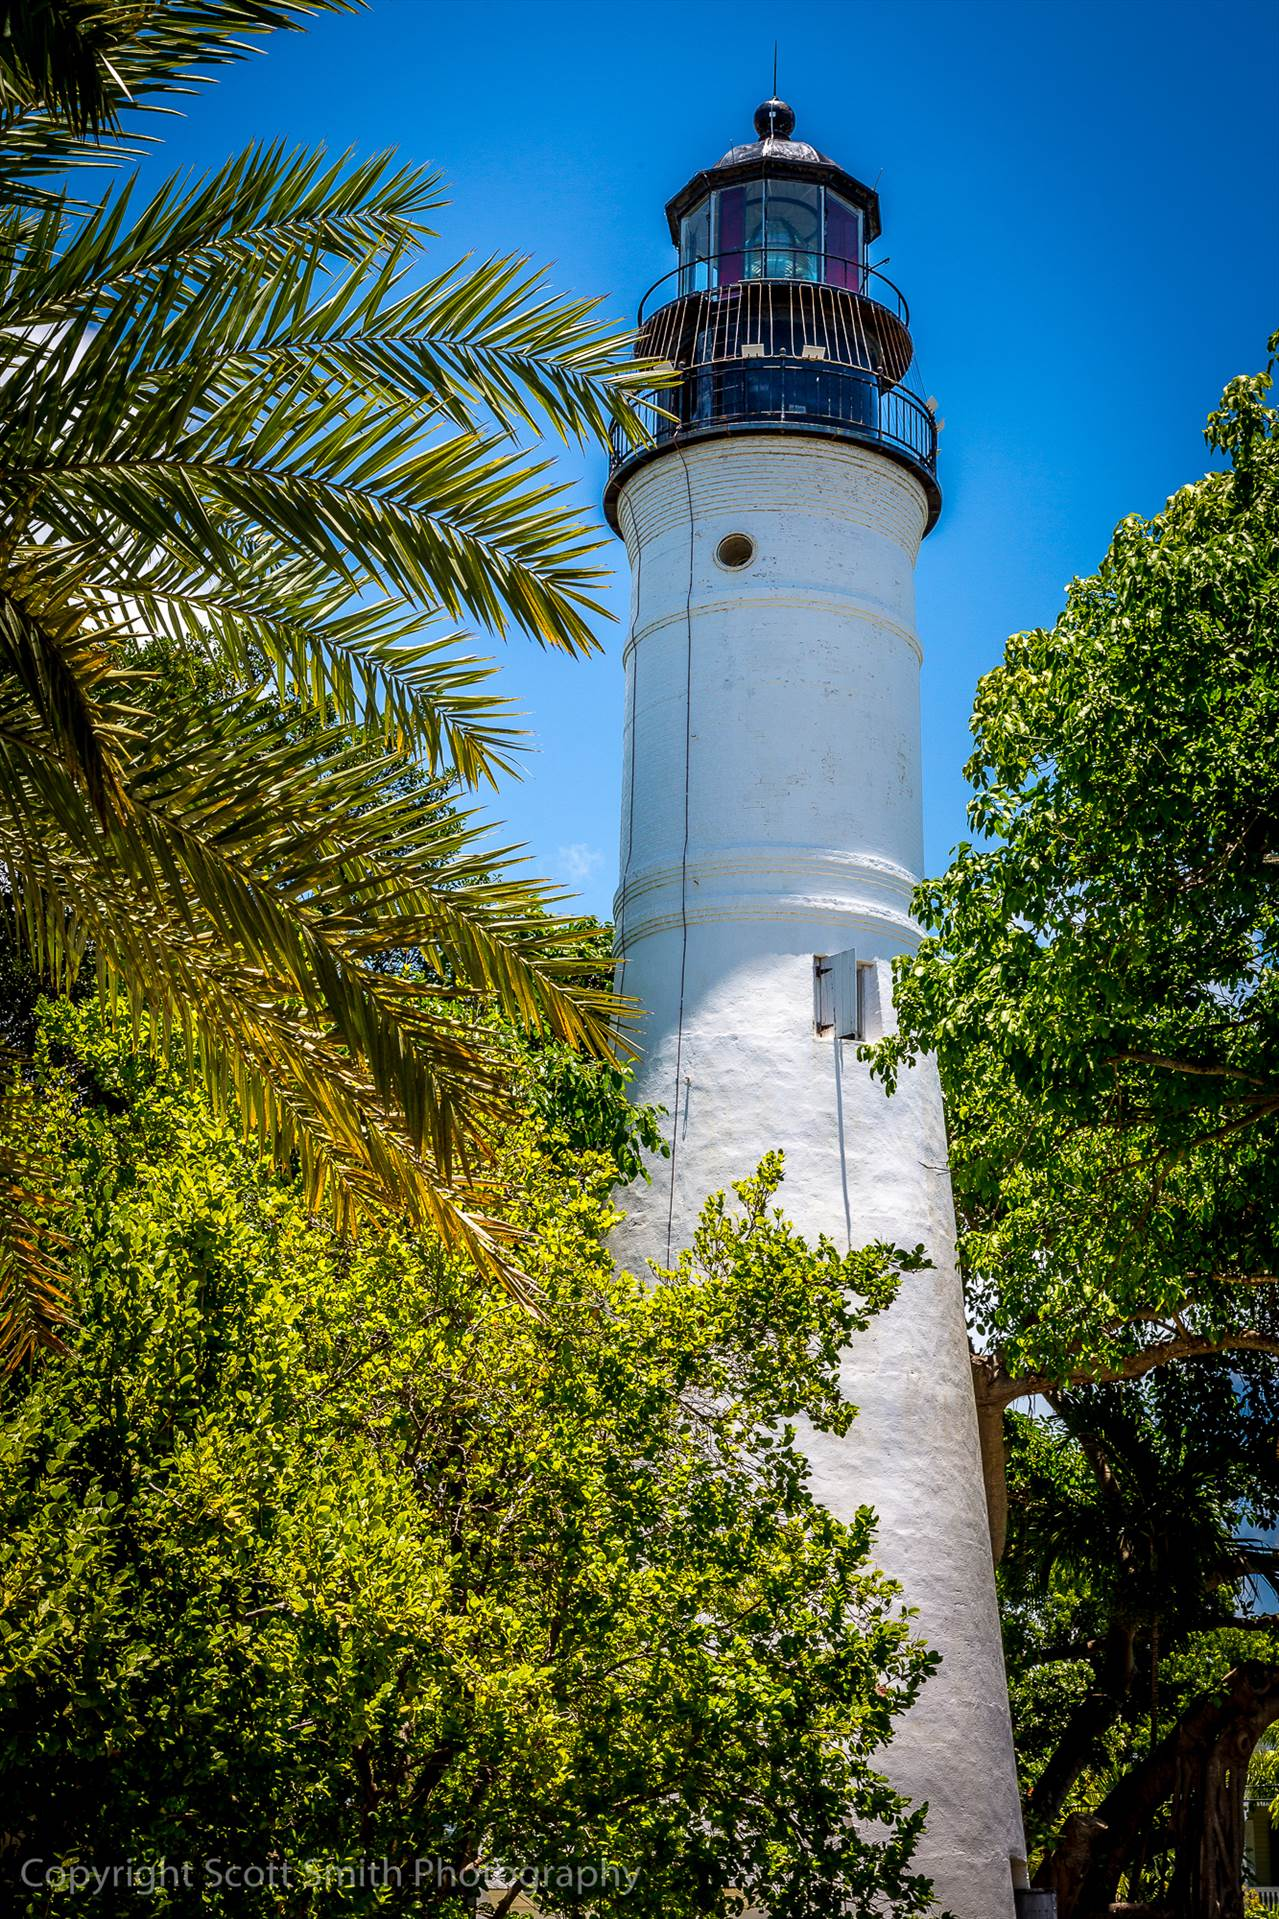 Key West Lighthouse - Across from Hemingway's house in Key West, Florida by D Scott Smith